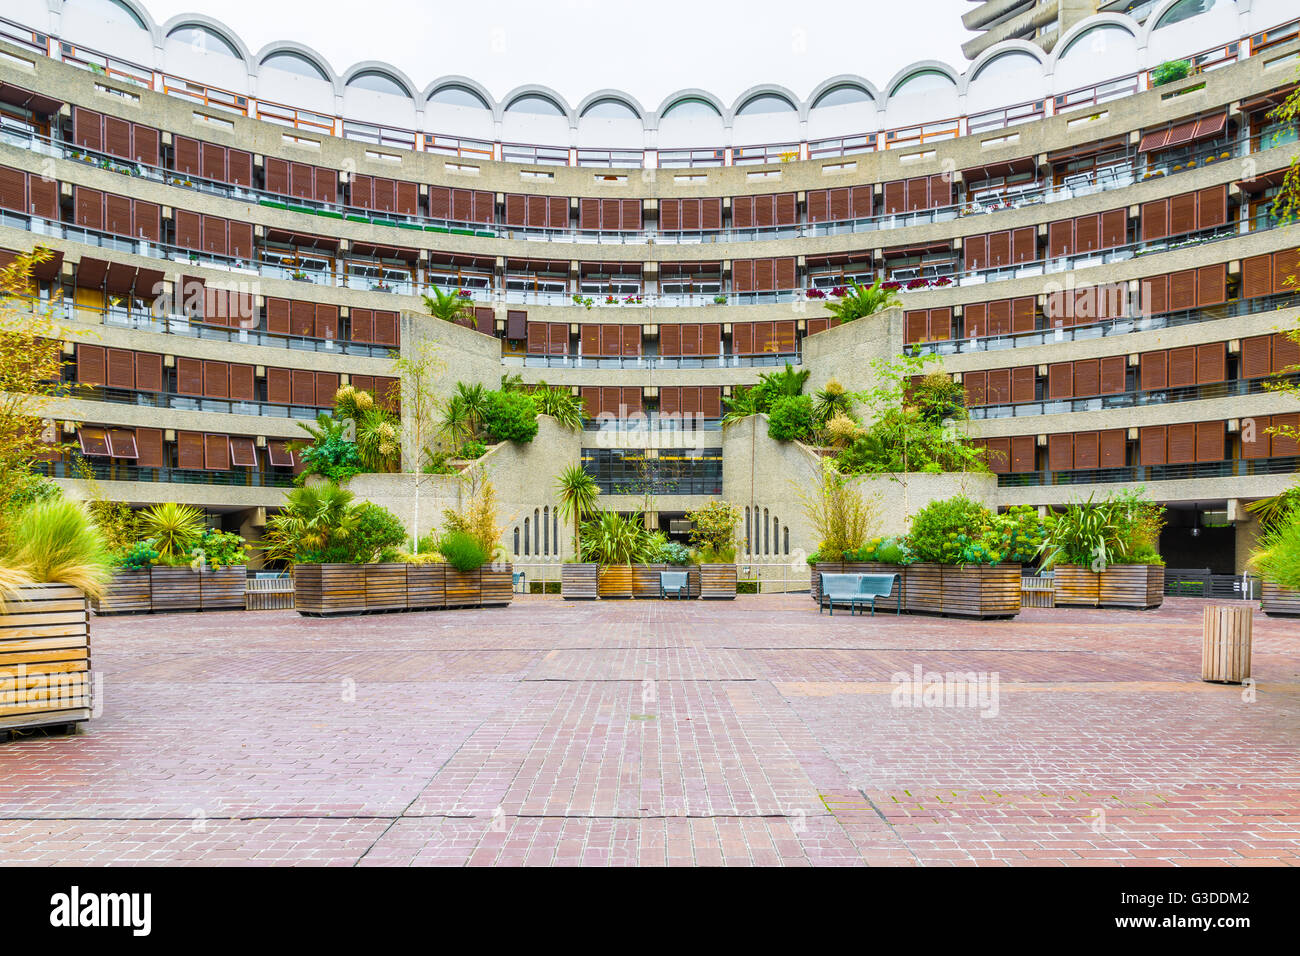 Frobisher Crescent, brutalist architecture building in the Barbican Complex, London Stock Photo